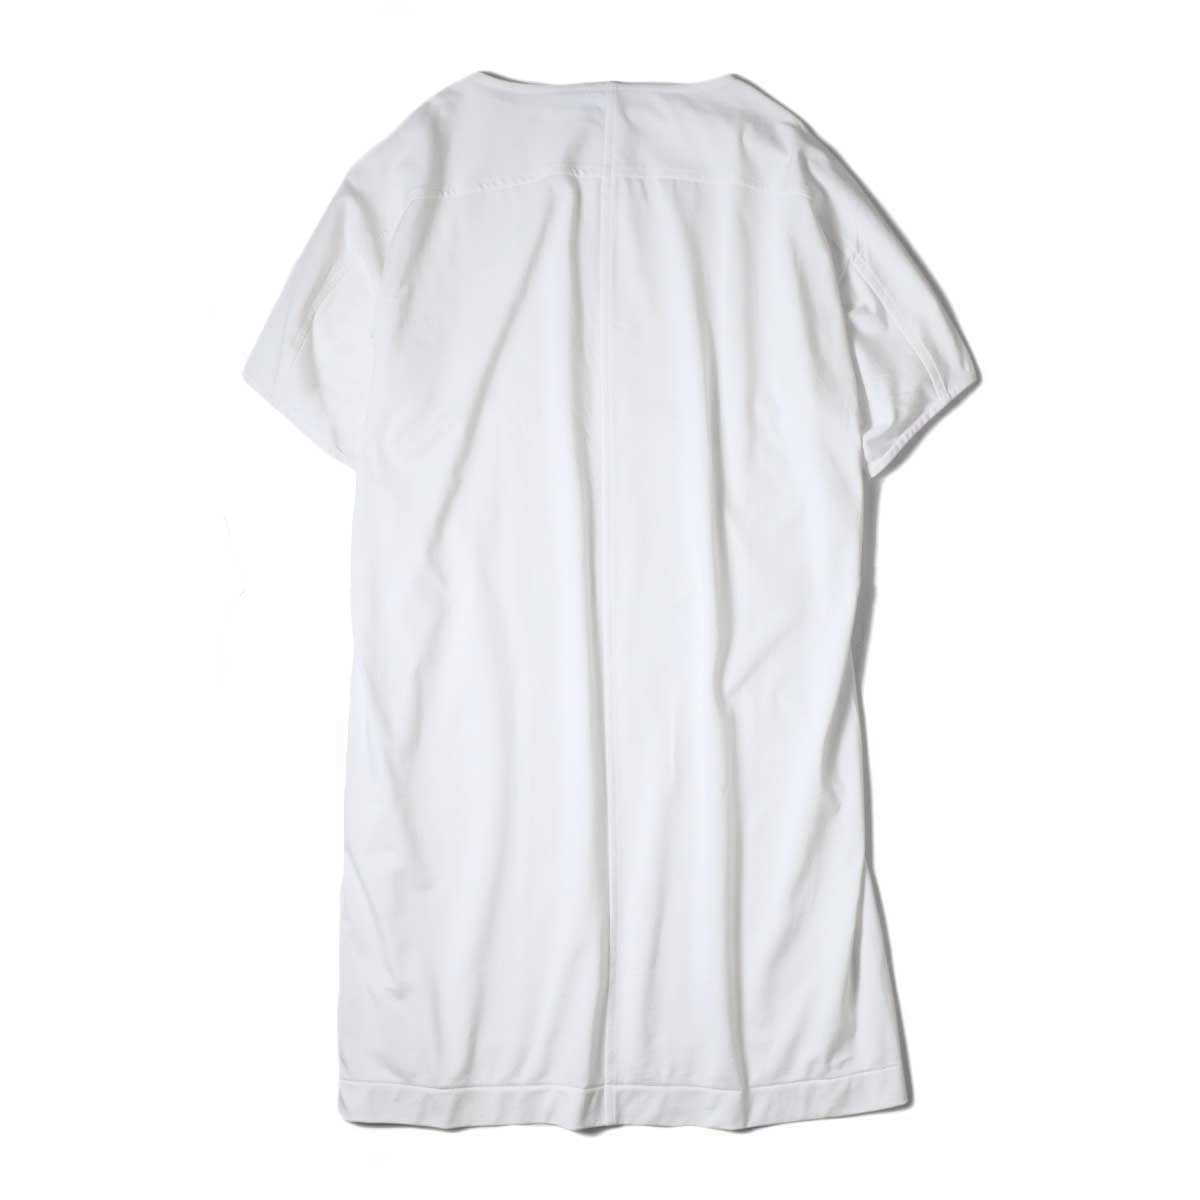 YLEVE / ORGANIC COTTON HIGH COUNT JERSEY OP (White) 背面